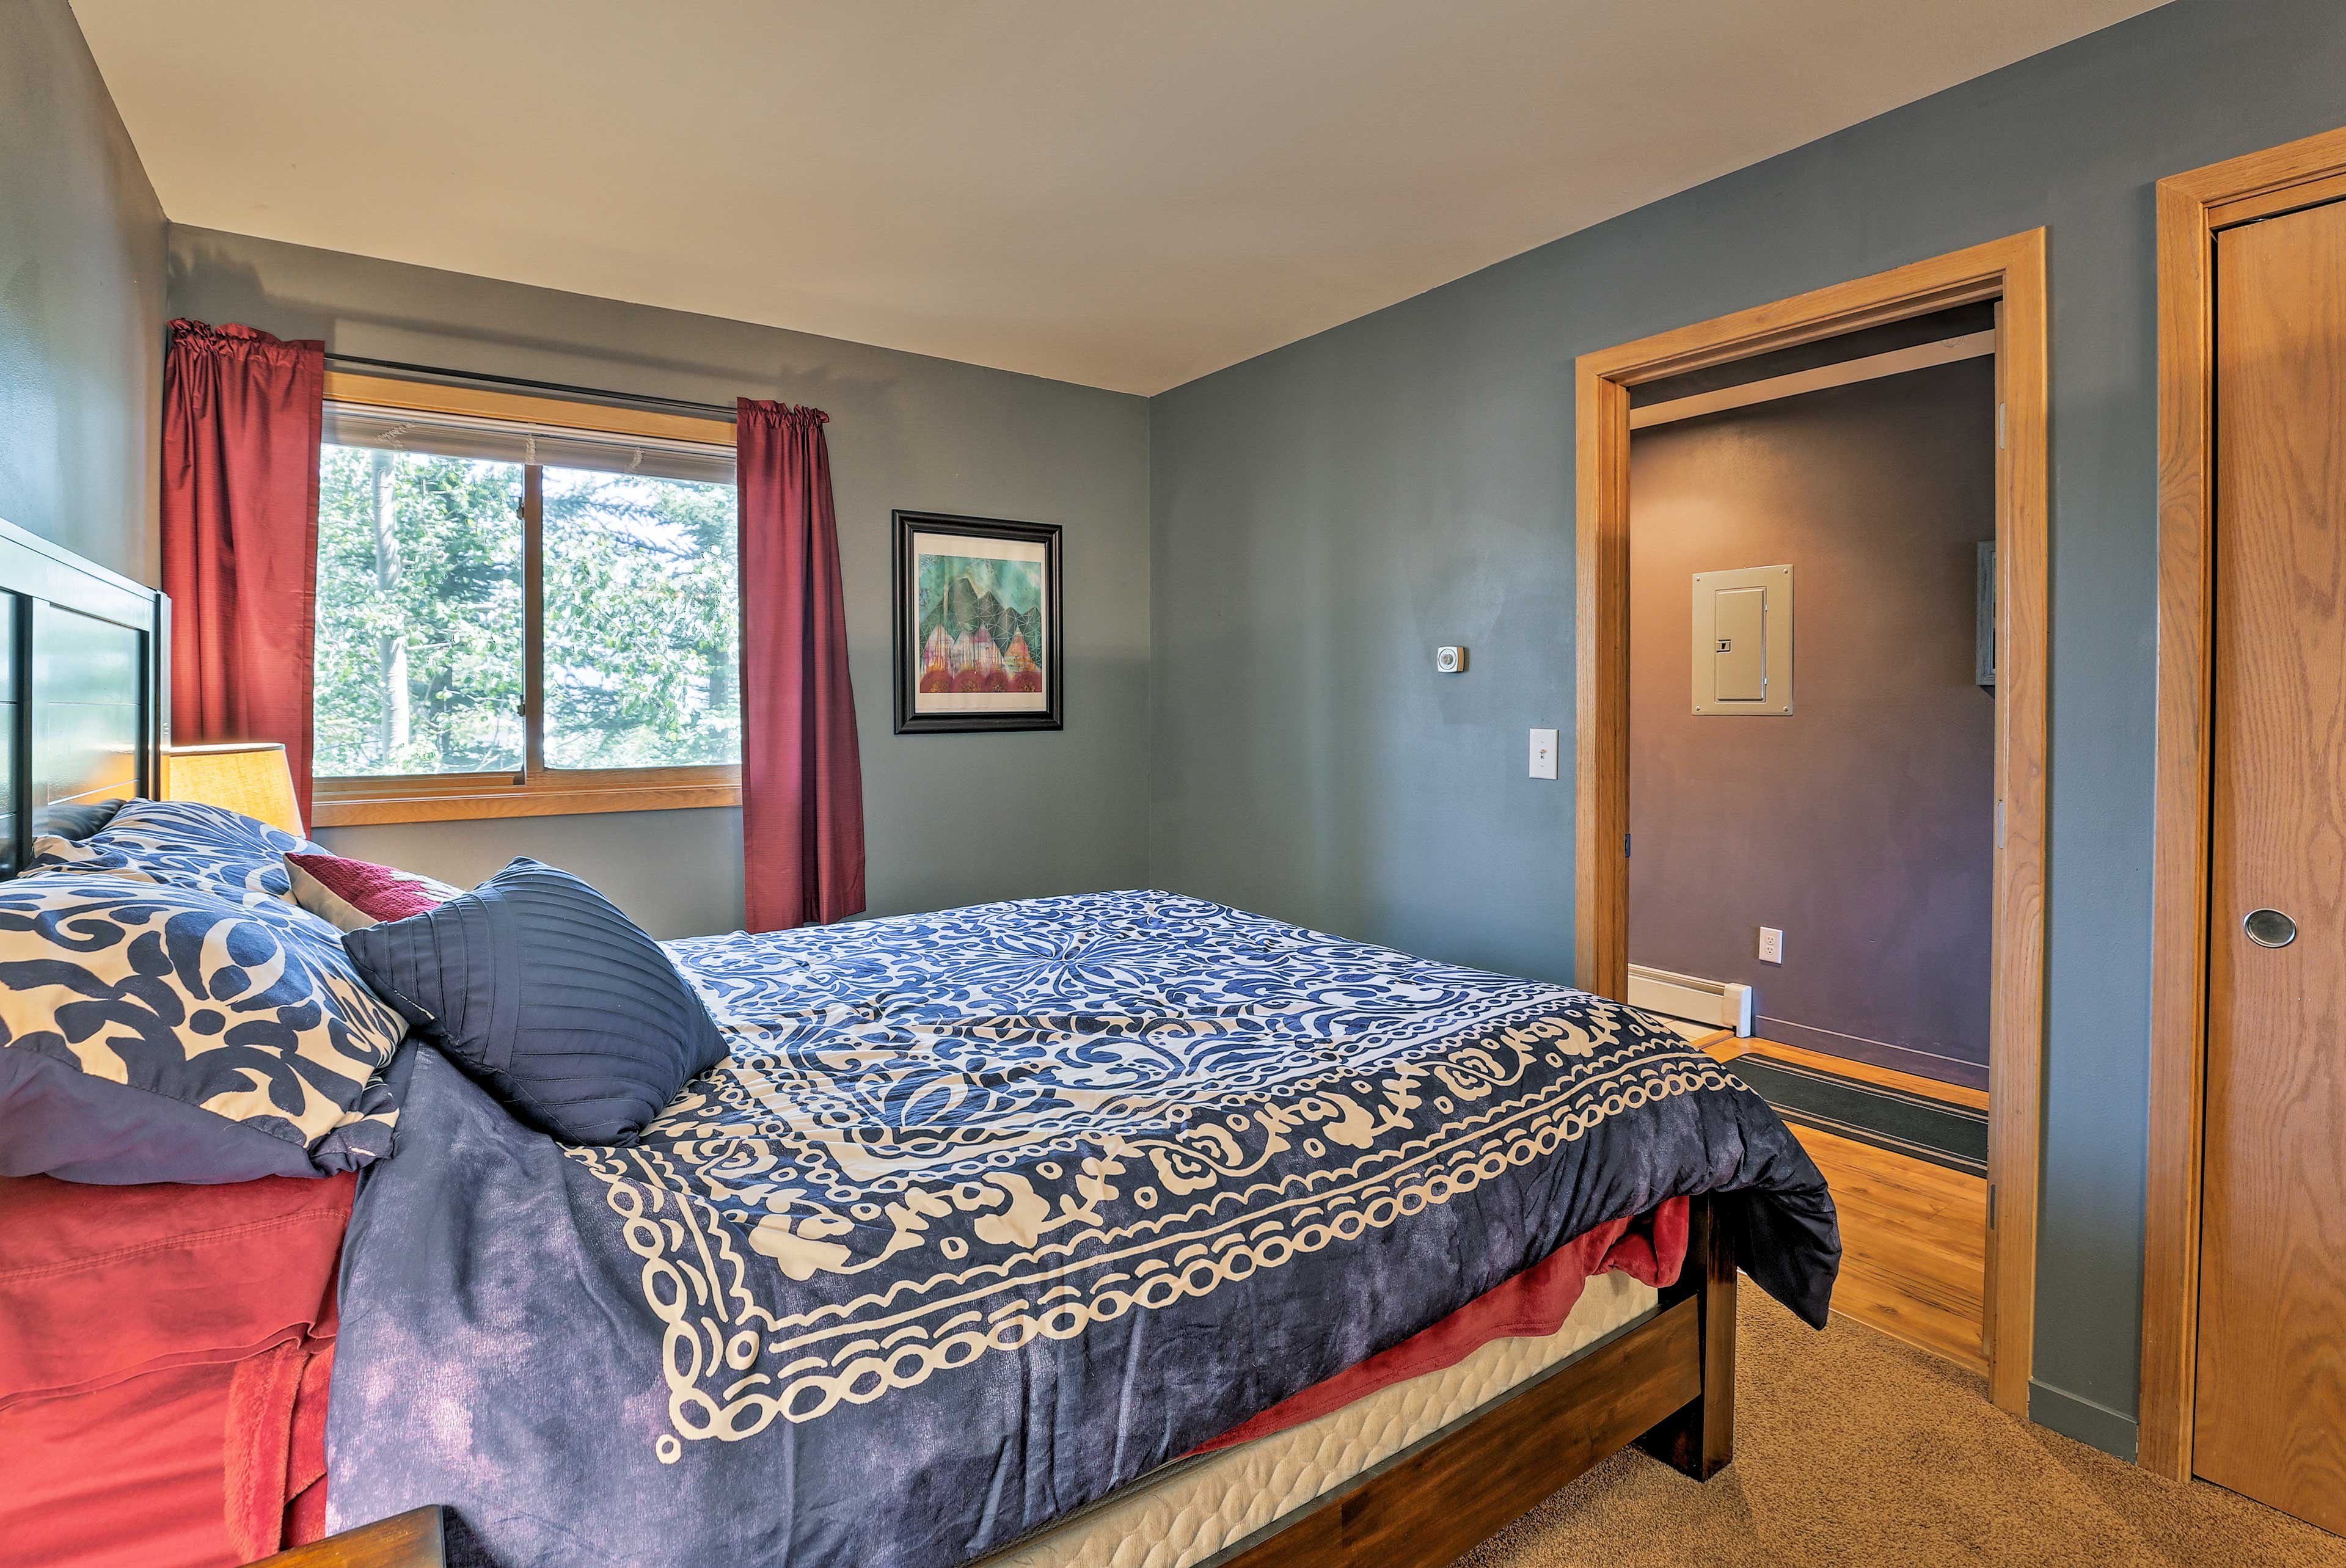 This home features 2 bedrooms and 2 full bathrooms.